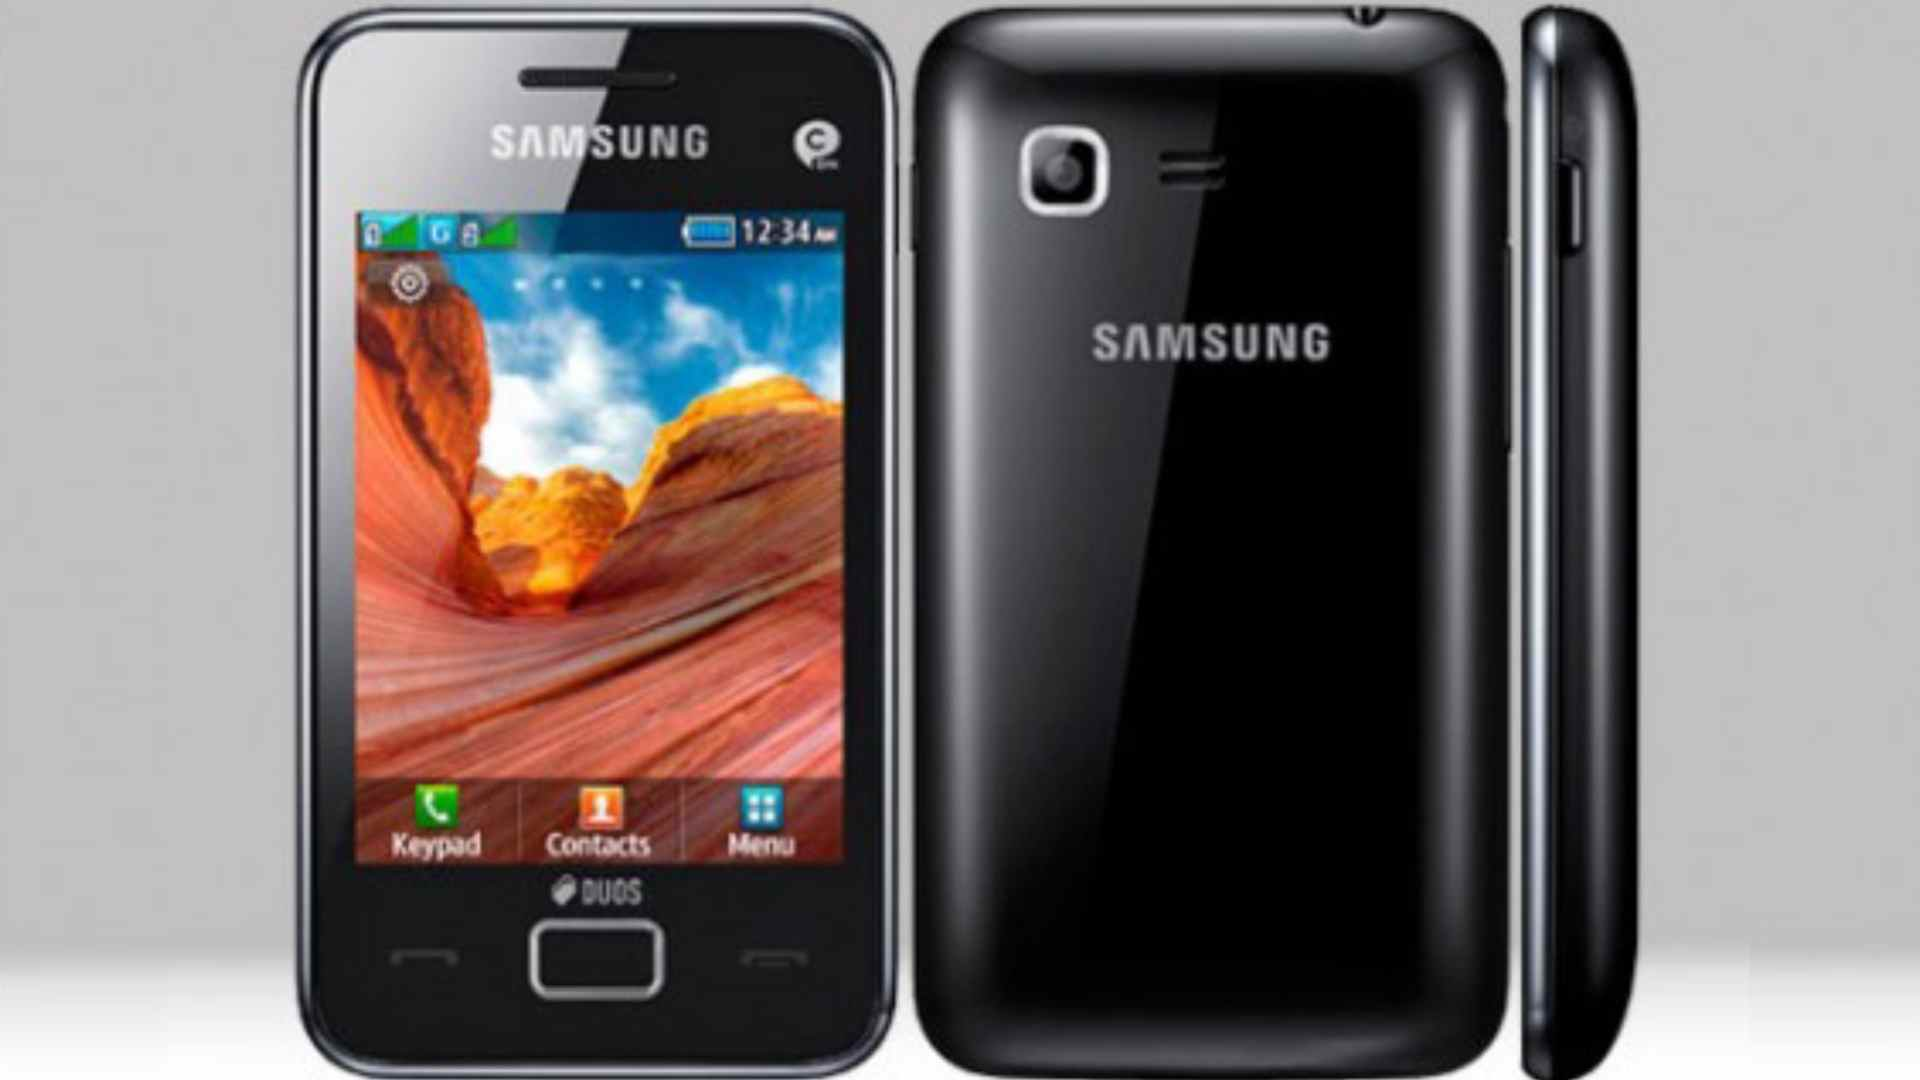 Samsung C3312 Duos Review